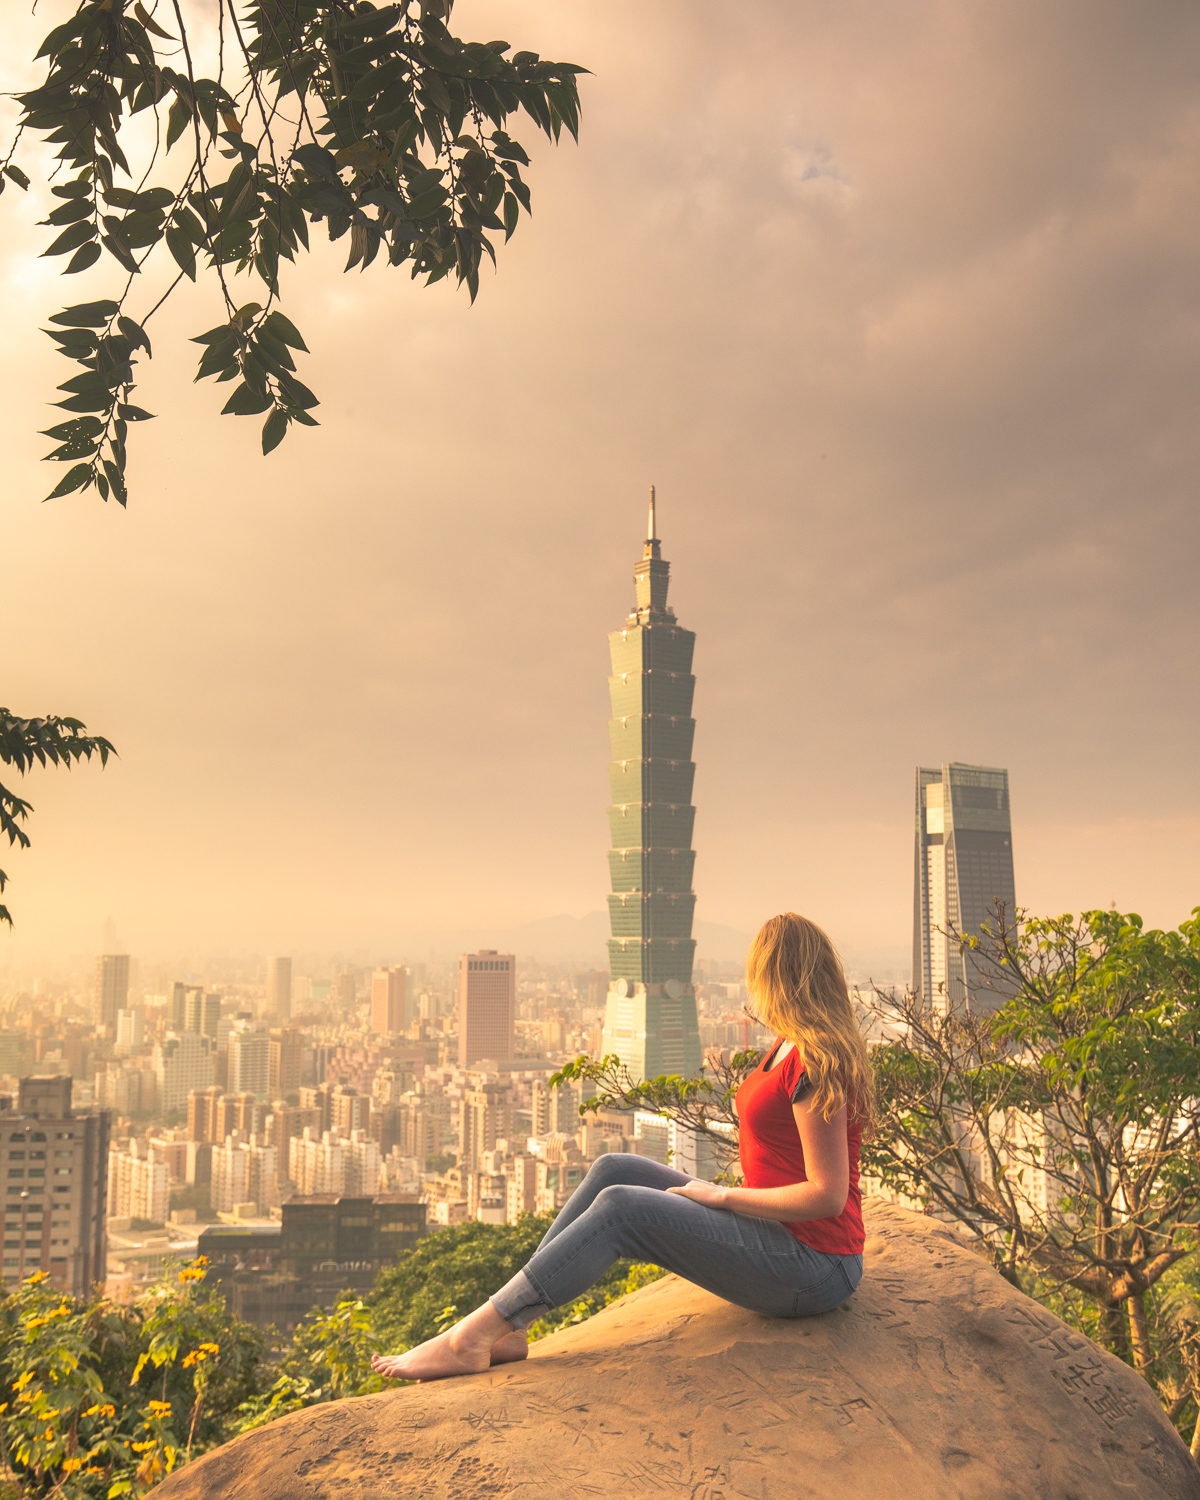 The most instagrammable place in Taipei - Elephant Mountain Rock